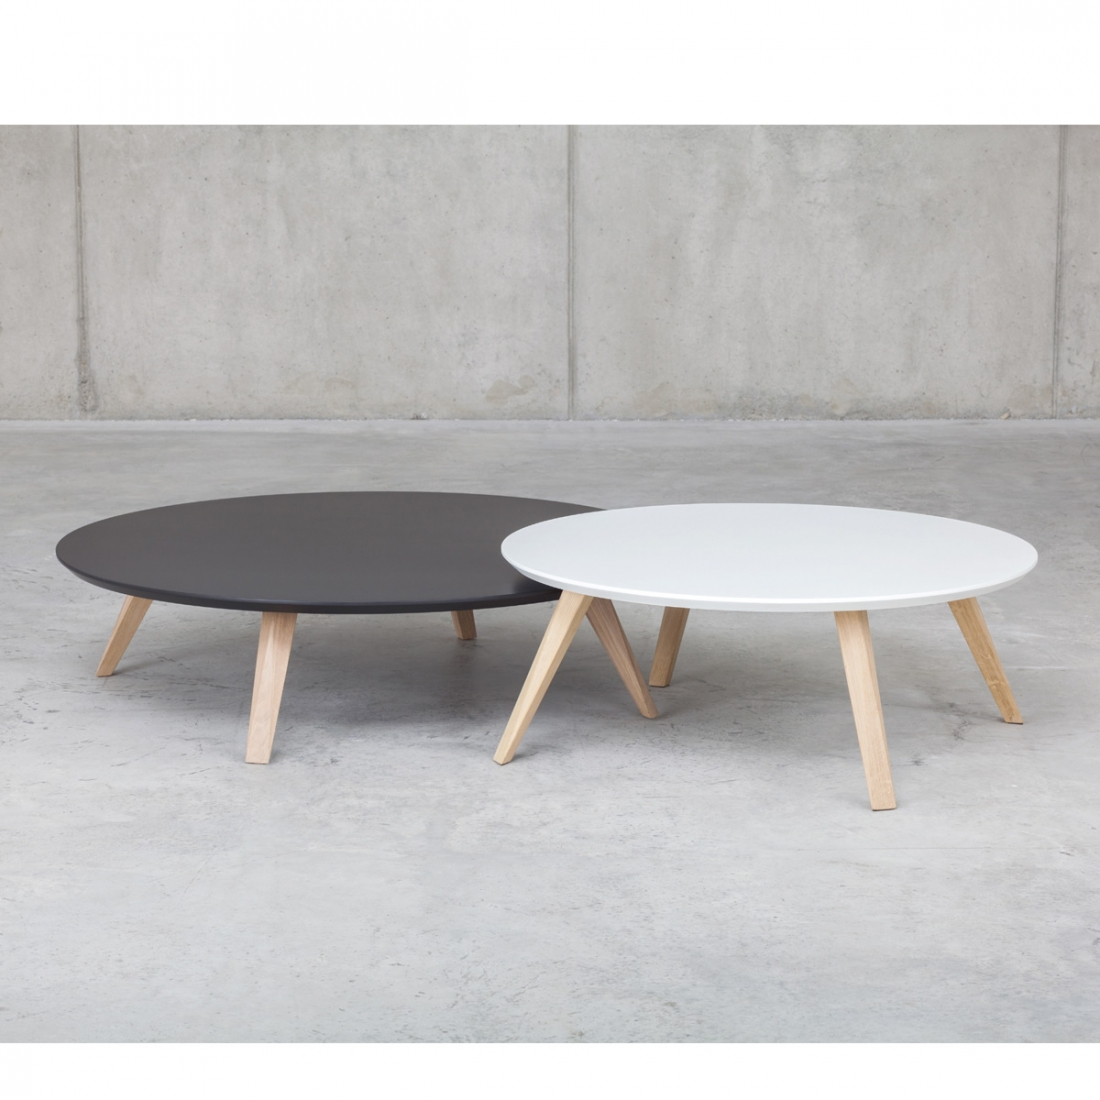 Table basse en bois prostoria zendart design for Table basse scandinave design